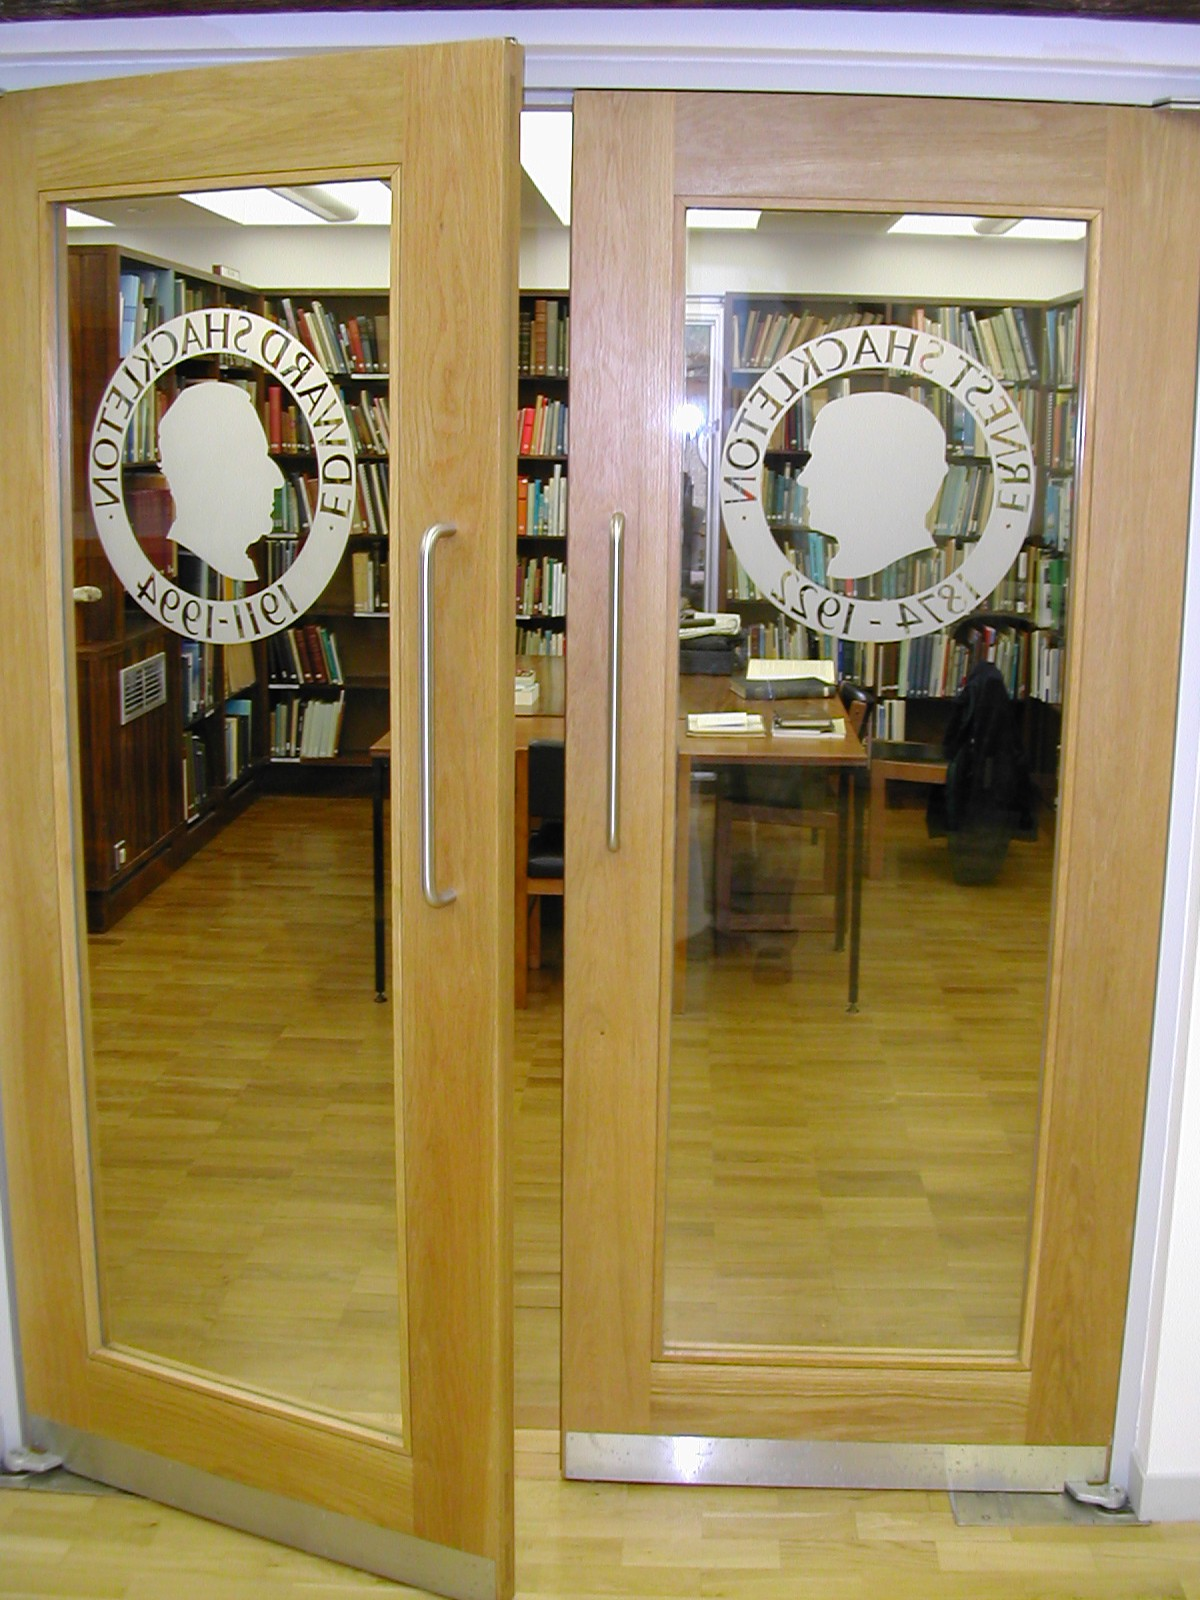 Shackleton Memorial Library